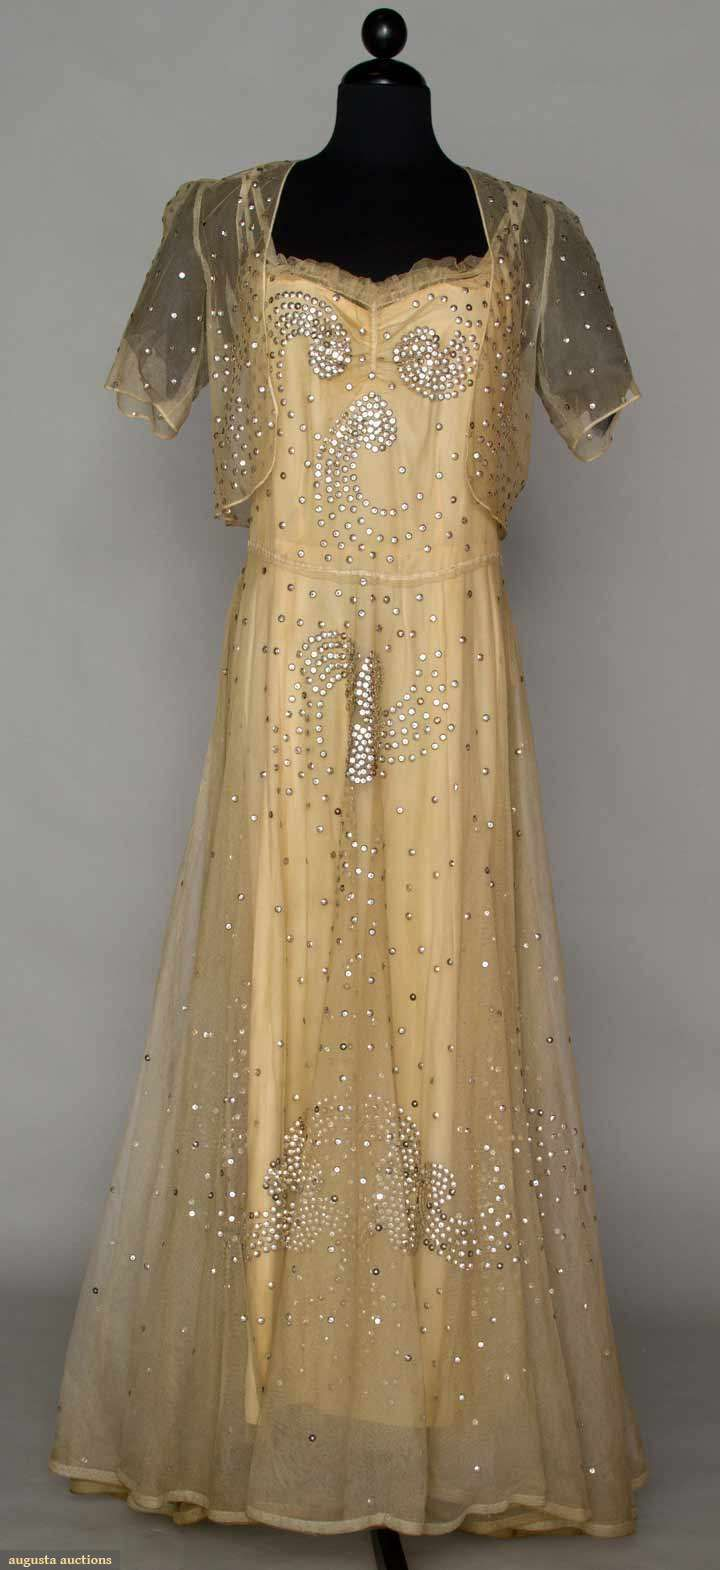 1940s Cream Net Evening Gown with Bolero